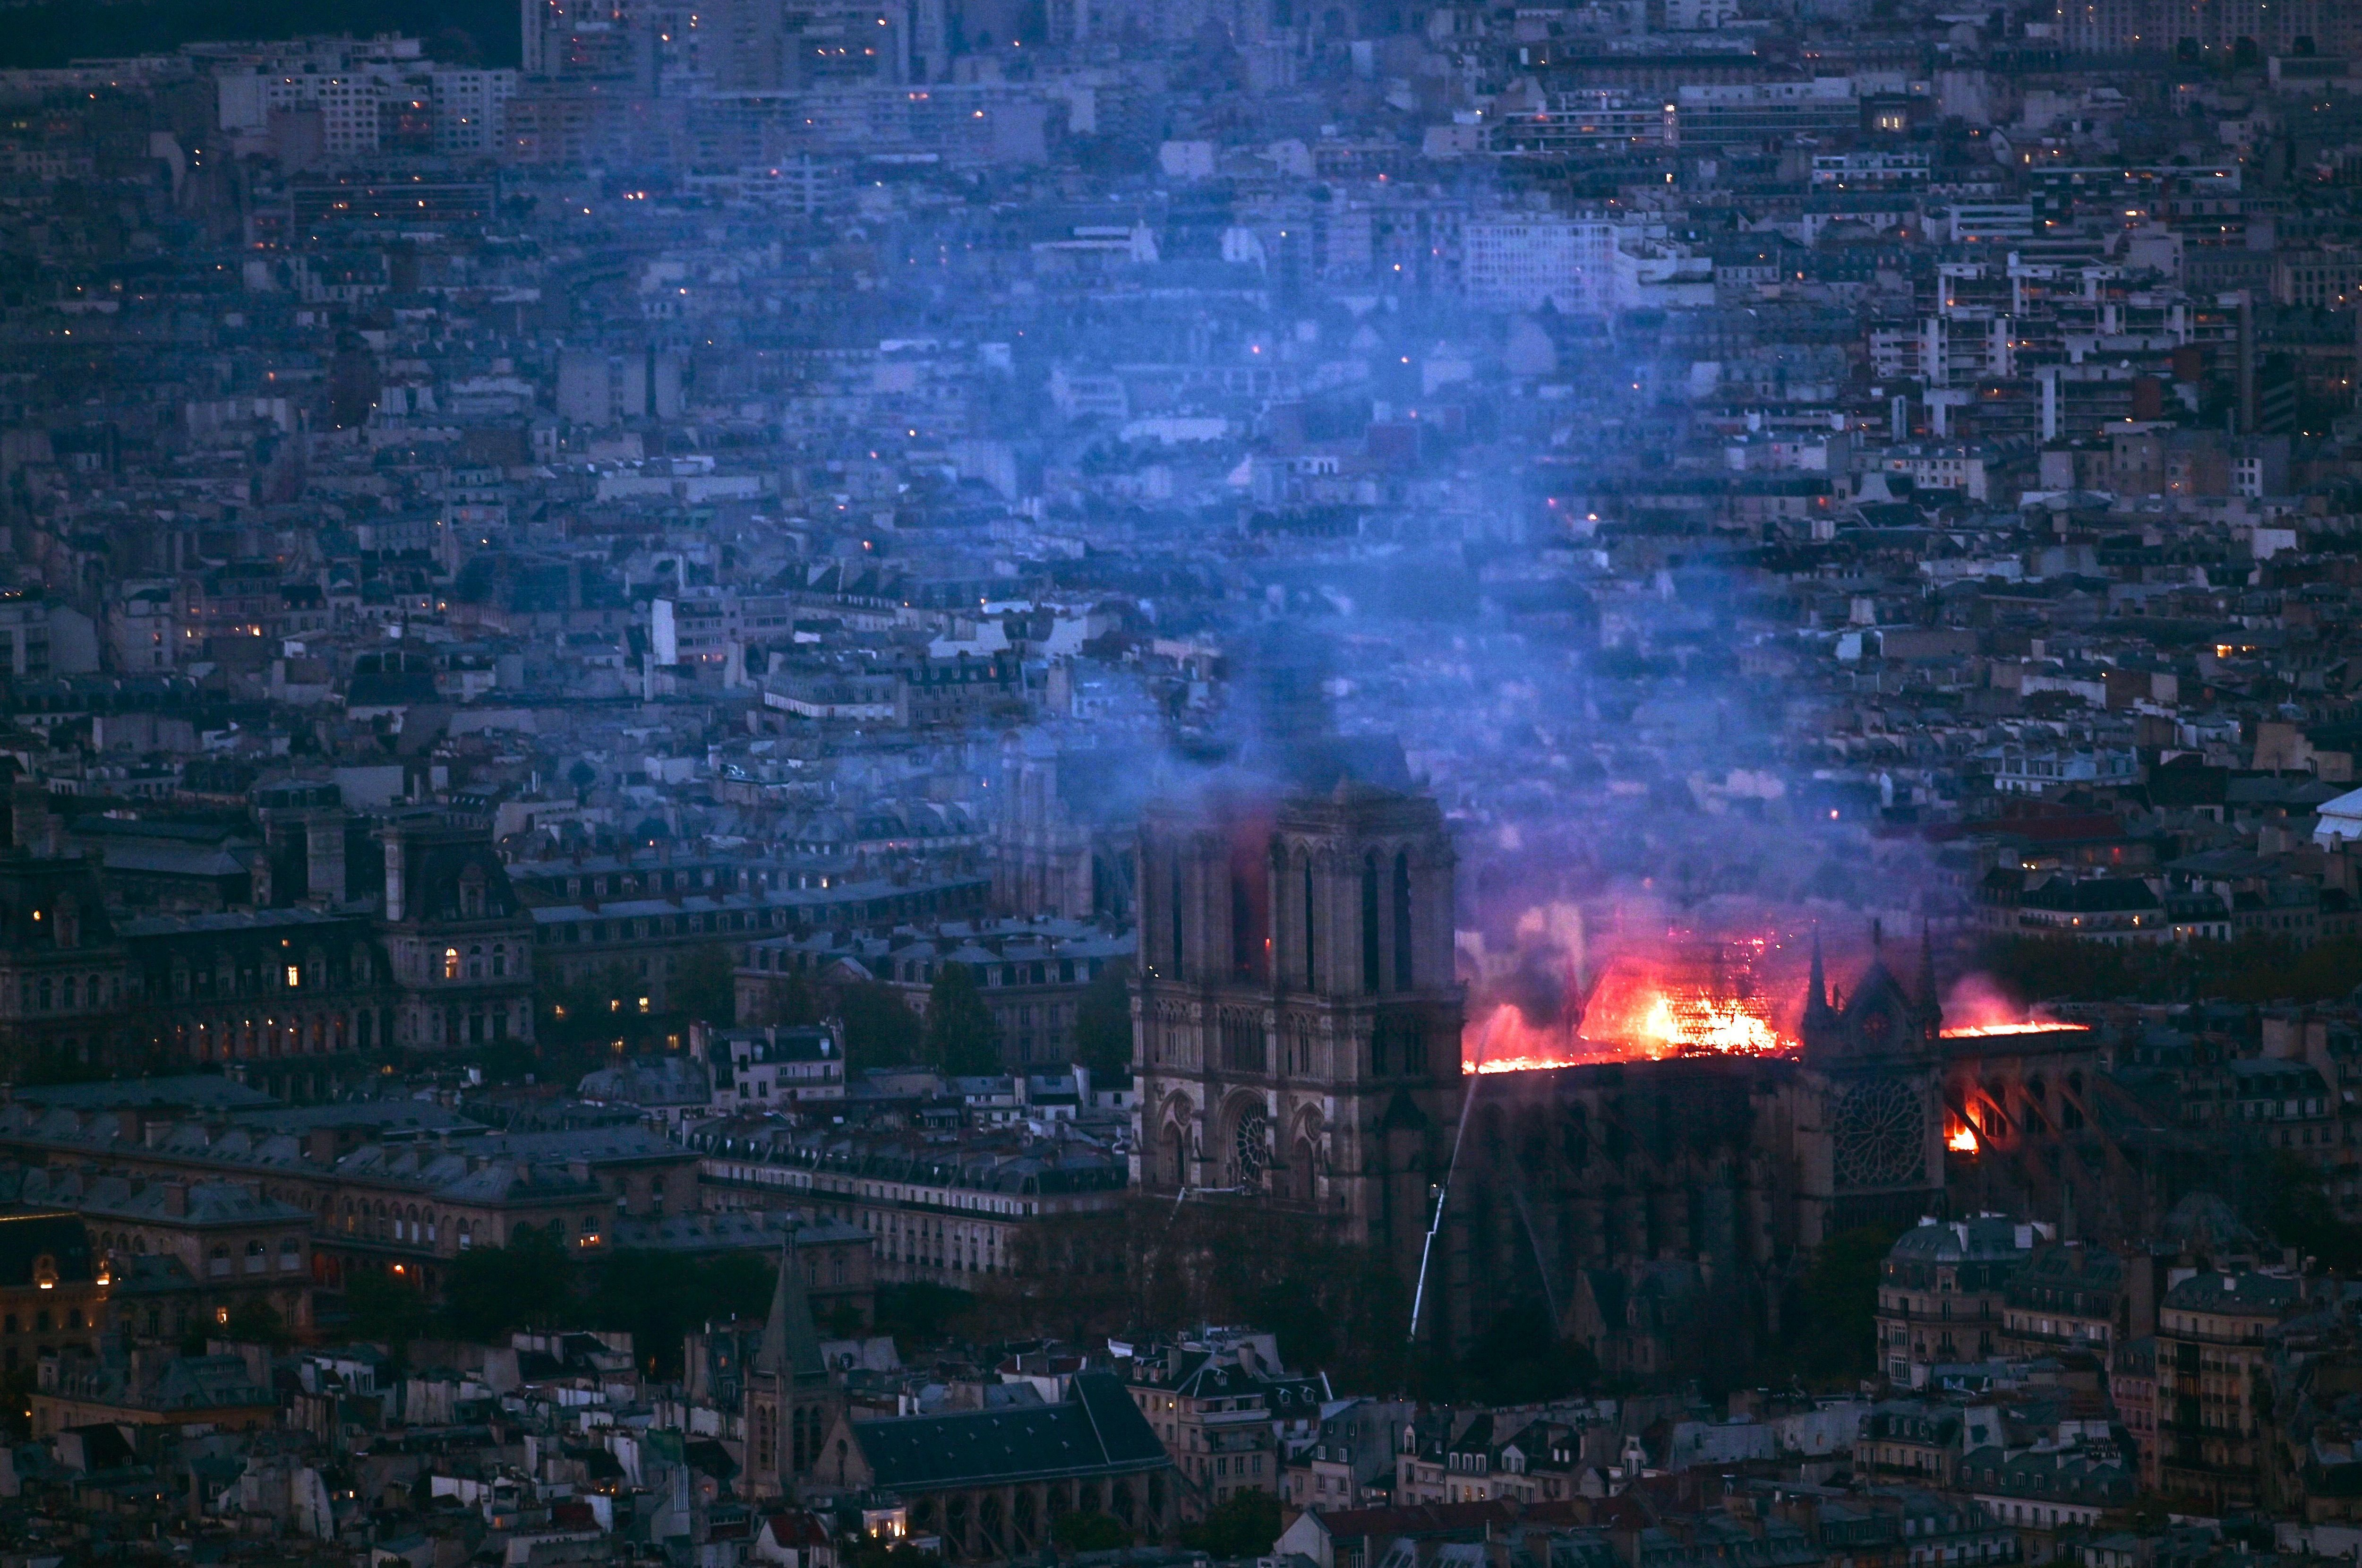 A view from Montparnasse Tower shows flames and smoke billowing from the roof of Notre Dame Cathedral in Paris.